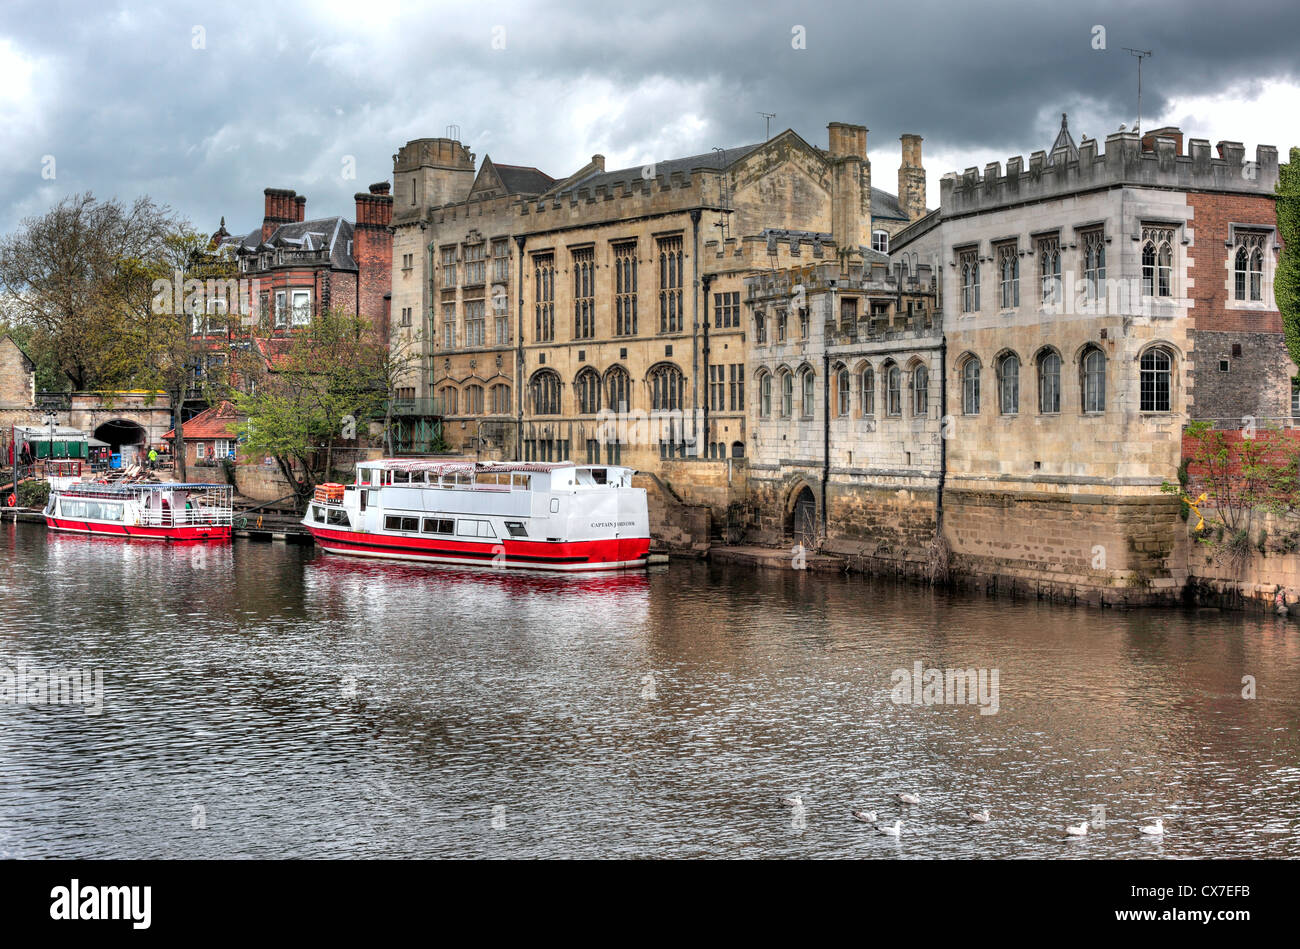 York, North Yorkshire, Inglaterra, Reino Unido. Imagen De Stock